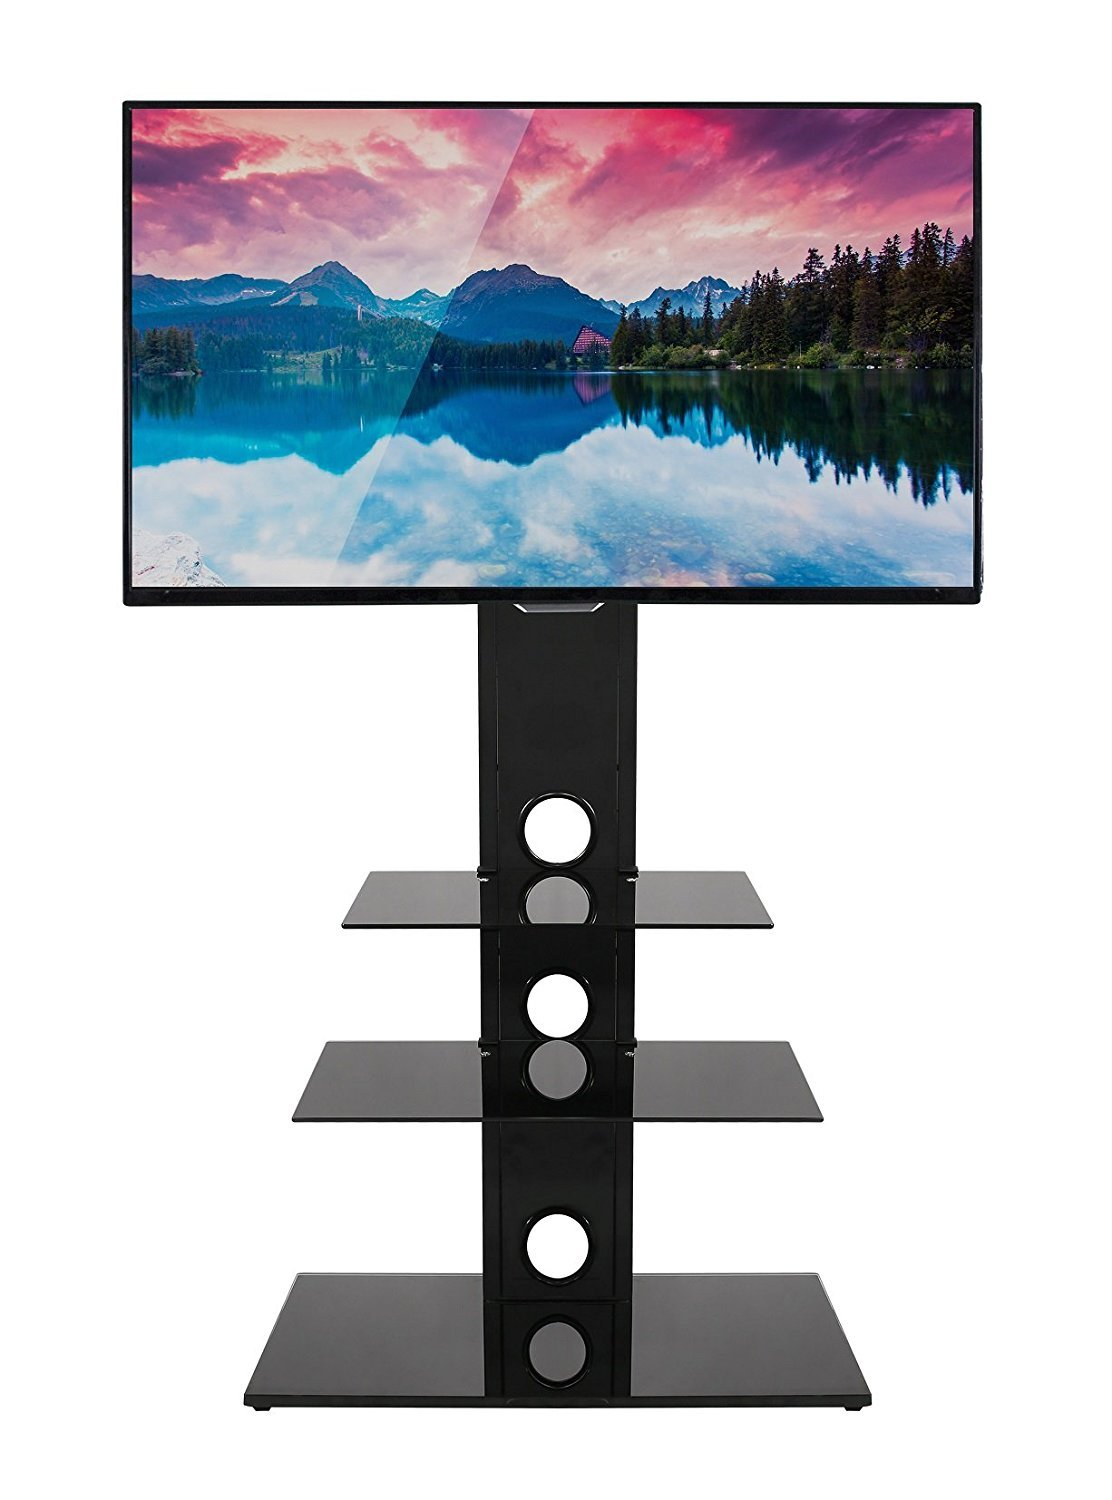 Mountright MK002 Cantilever TV Stand With Swivel Bracket For Screens 27 Up To 55 Inch TMK002B